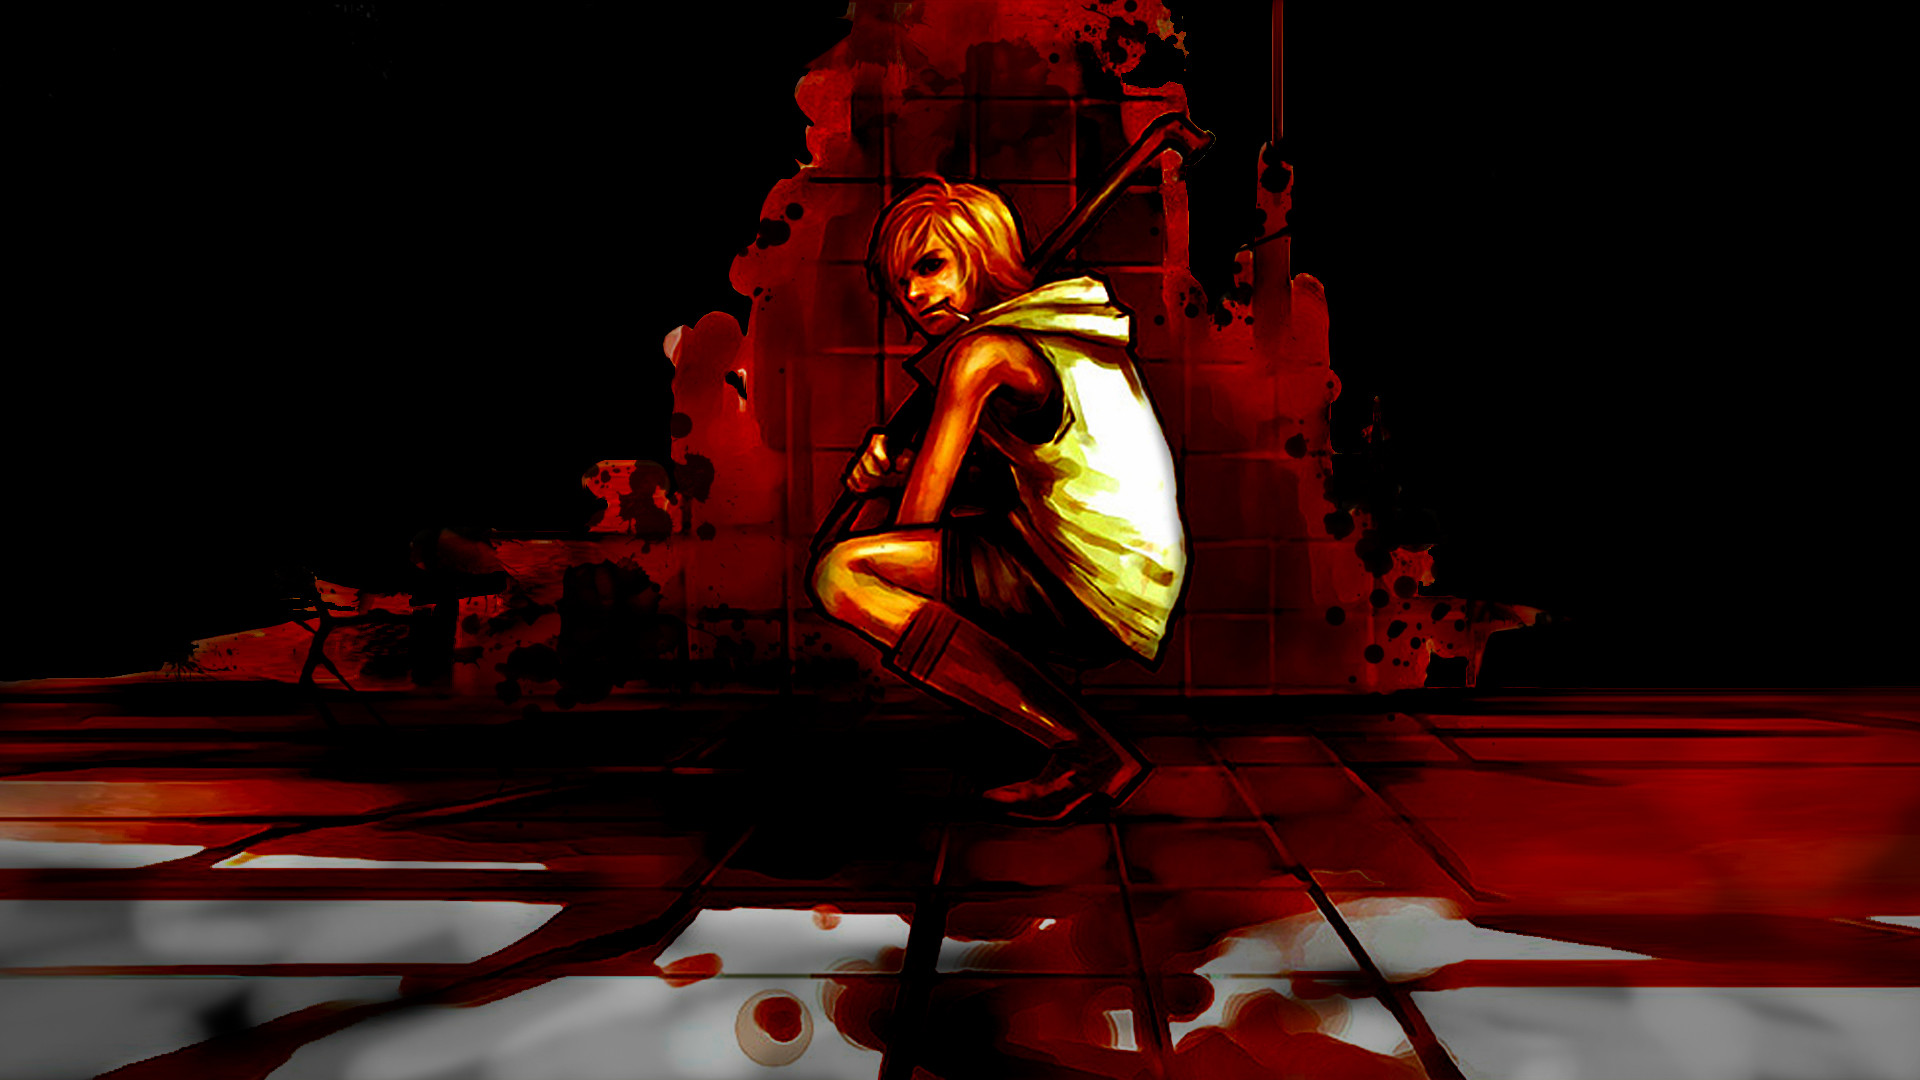 Res: 1920x1080, Silent Hill 3 Bloody Wallpaper v1.0 by Razpootin